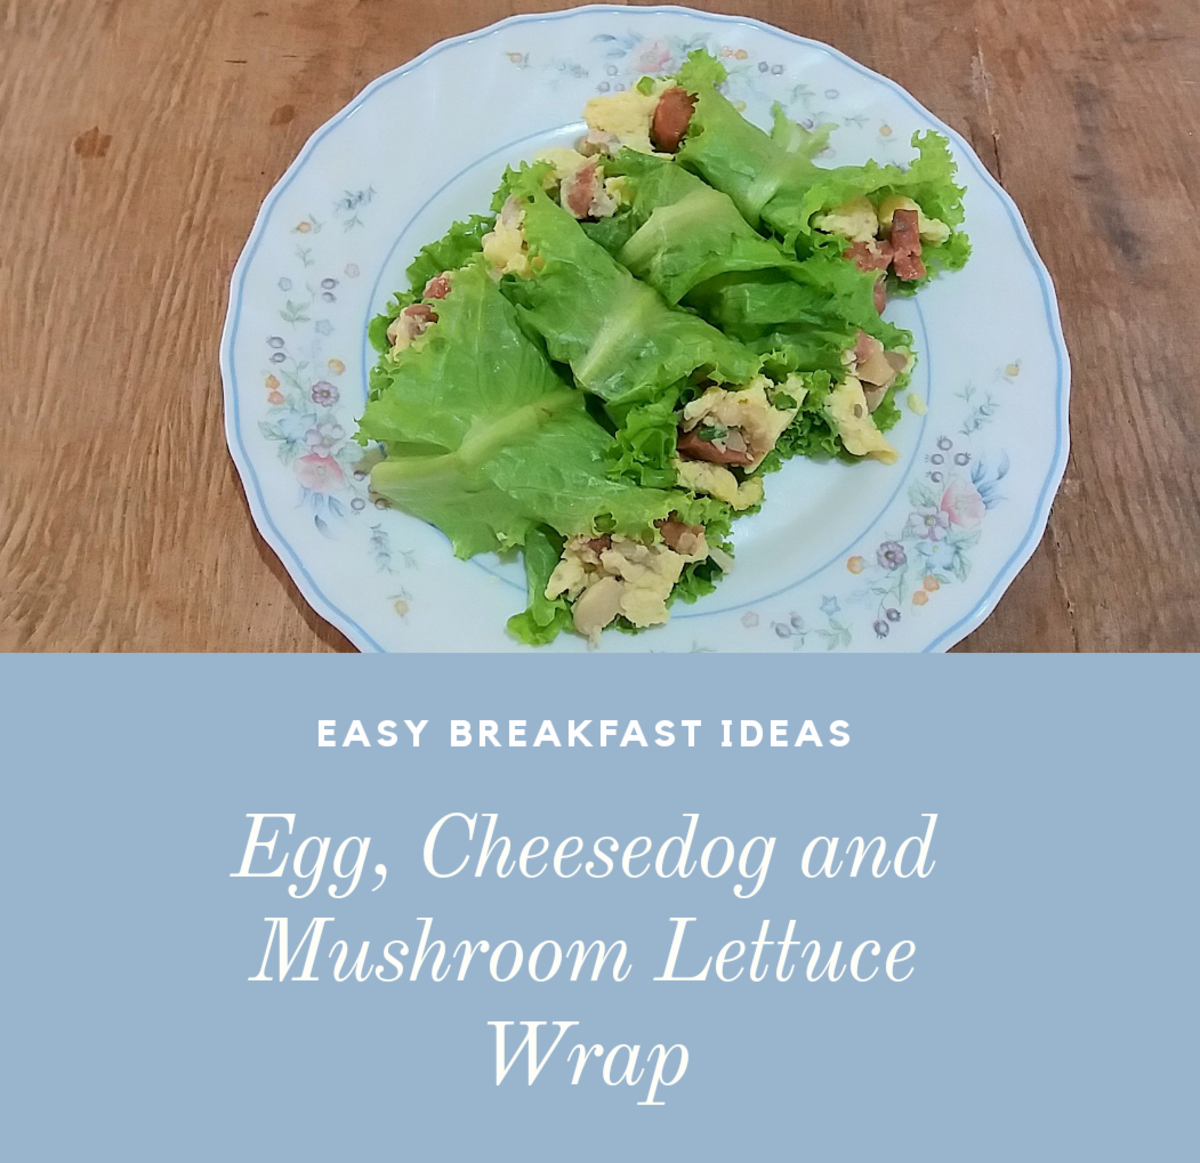 Easy Breakfast Idea: Egg, Cheese Dog, and Mushroom Lettuce Wrap